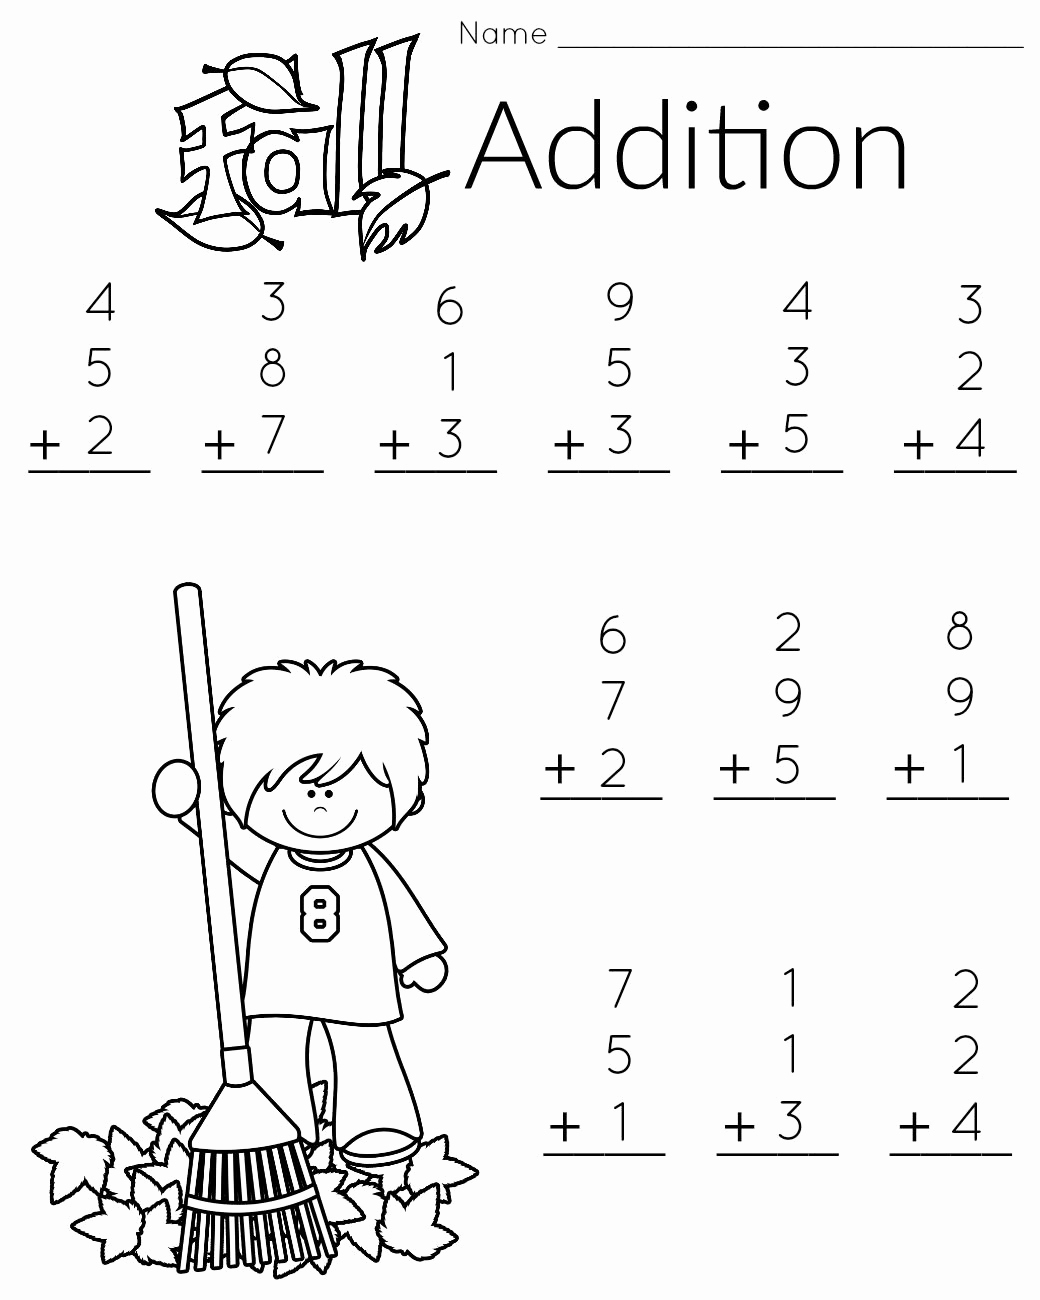 Worksheets for First Grade Writing Inspirational 1st Grade Worksheets Best Coloring Pages for Kids